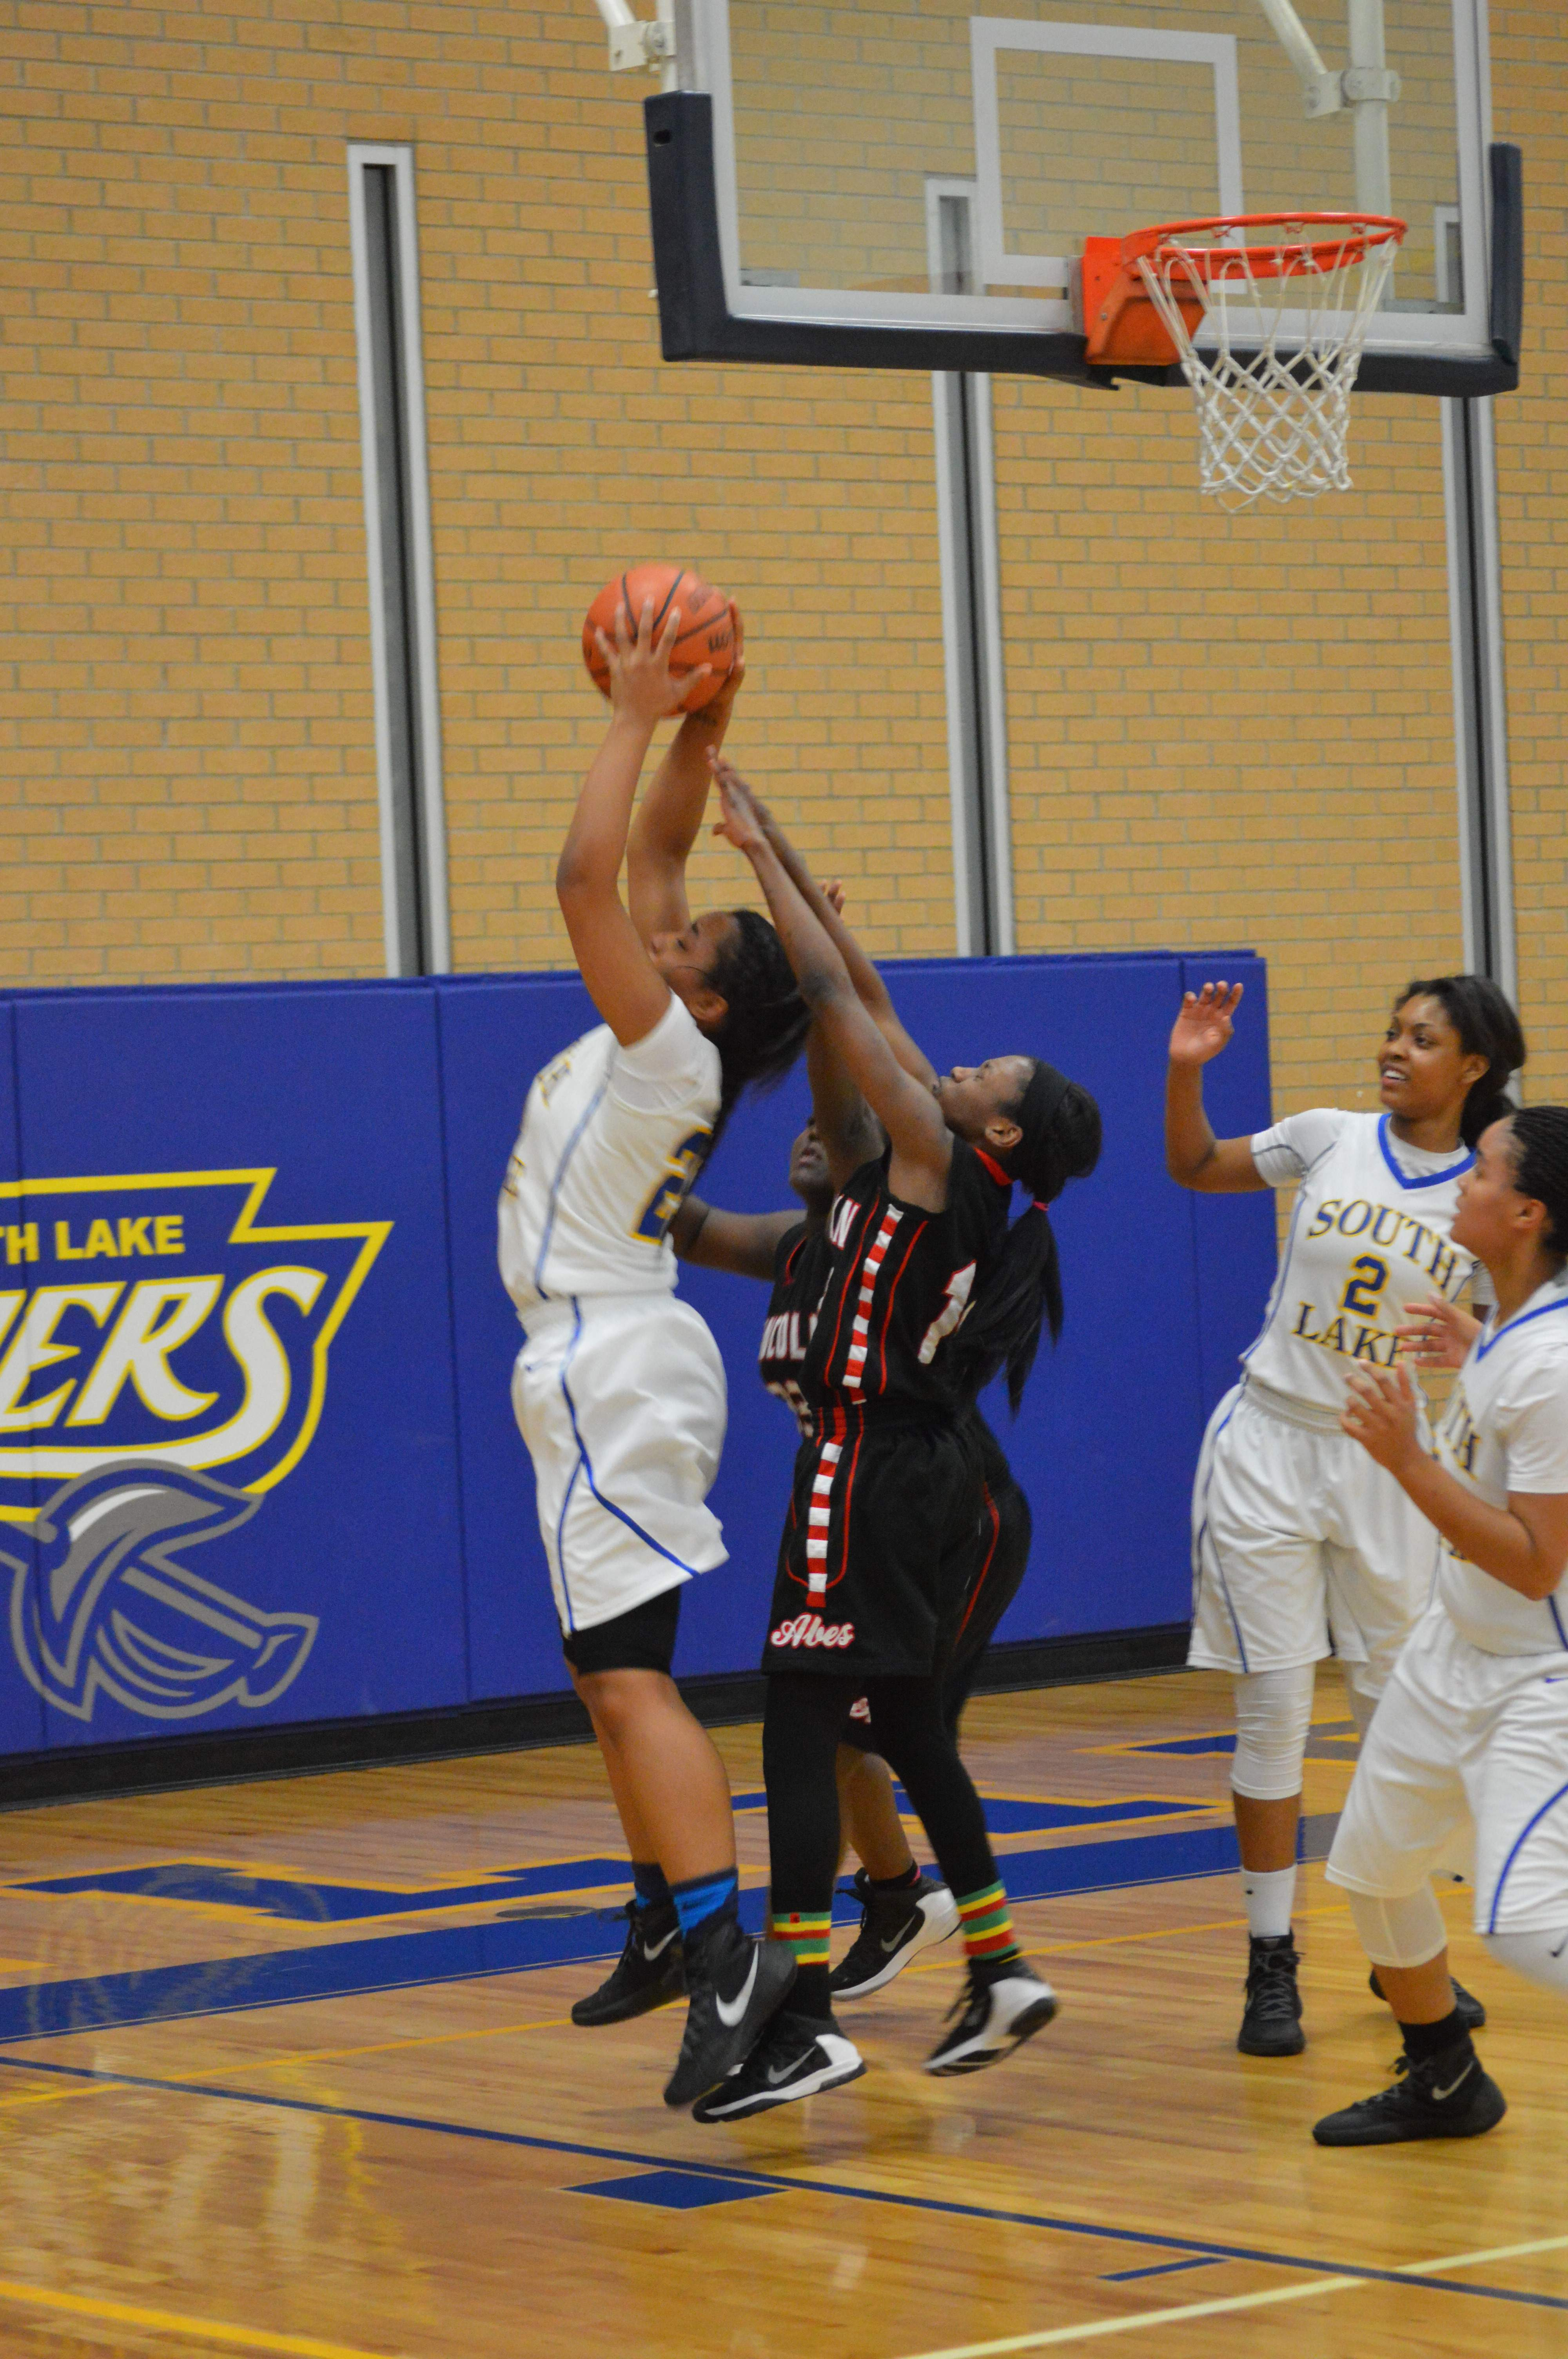 Determined to block Lincoln, Chantonia Lowry '16 grabs the ball in midair.